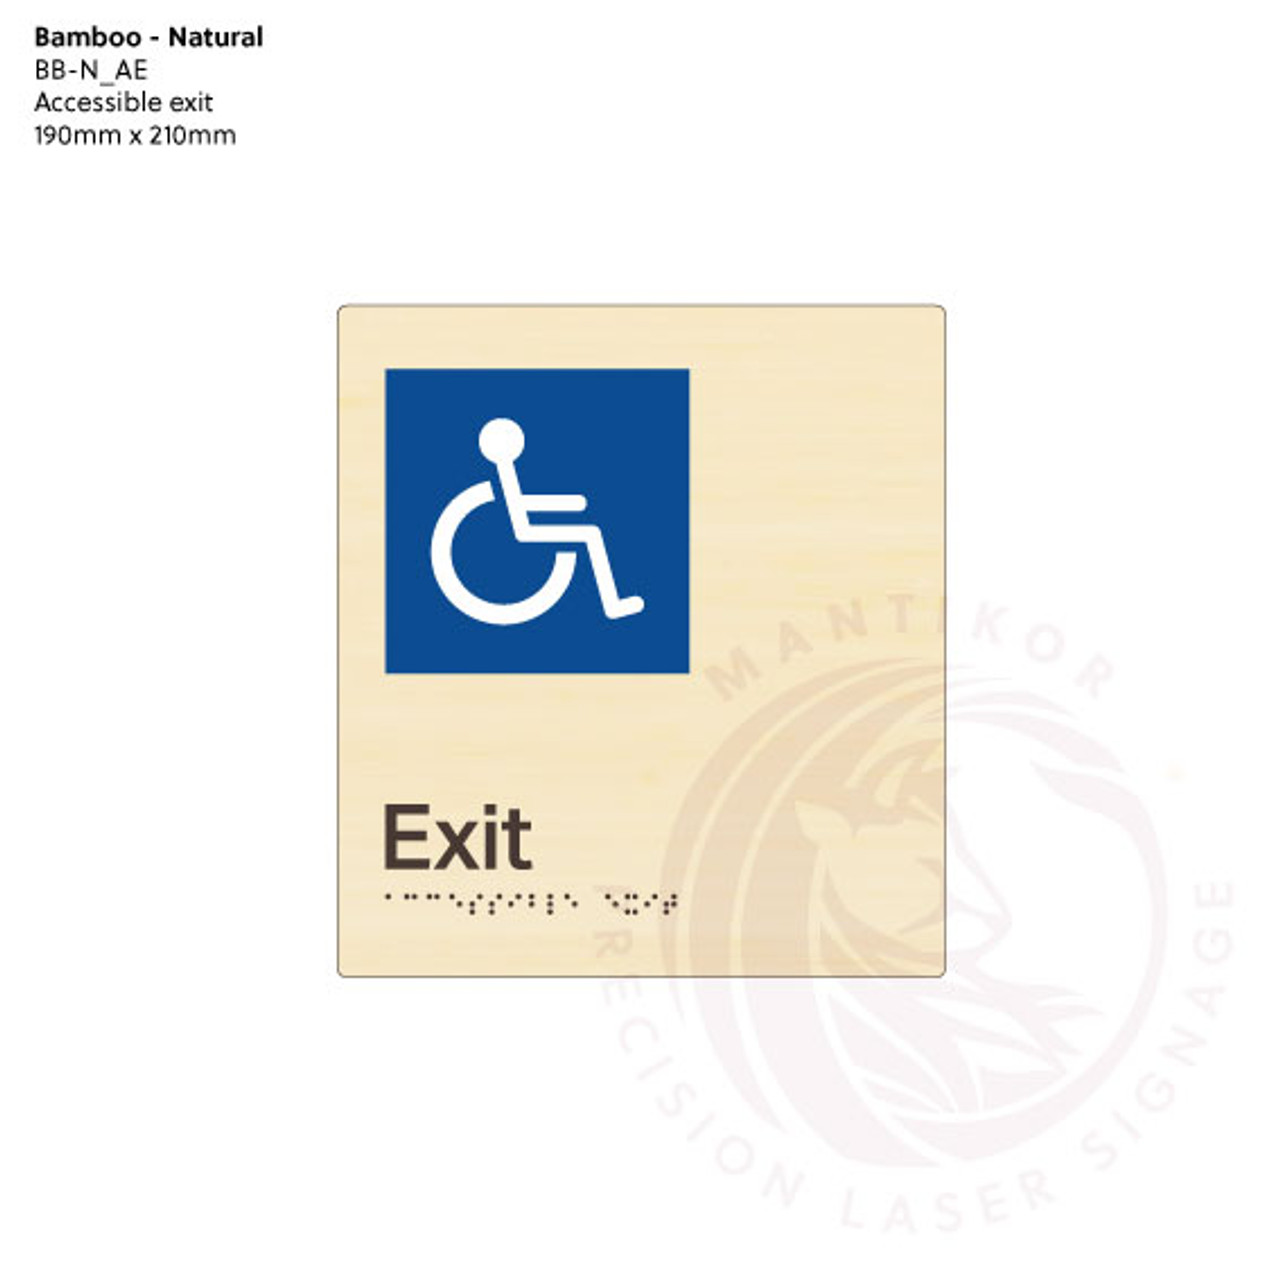 Natural Bamboo Tactile Braille Signs - Accessible Exit